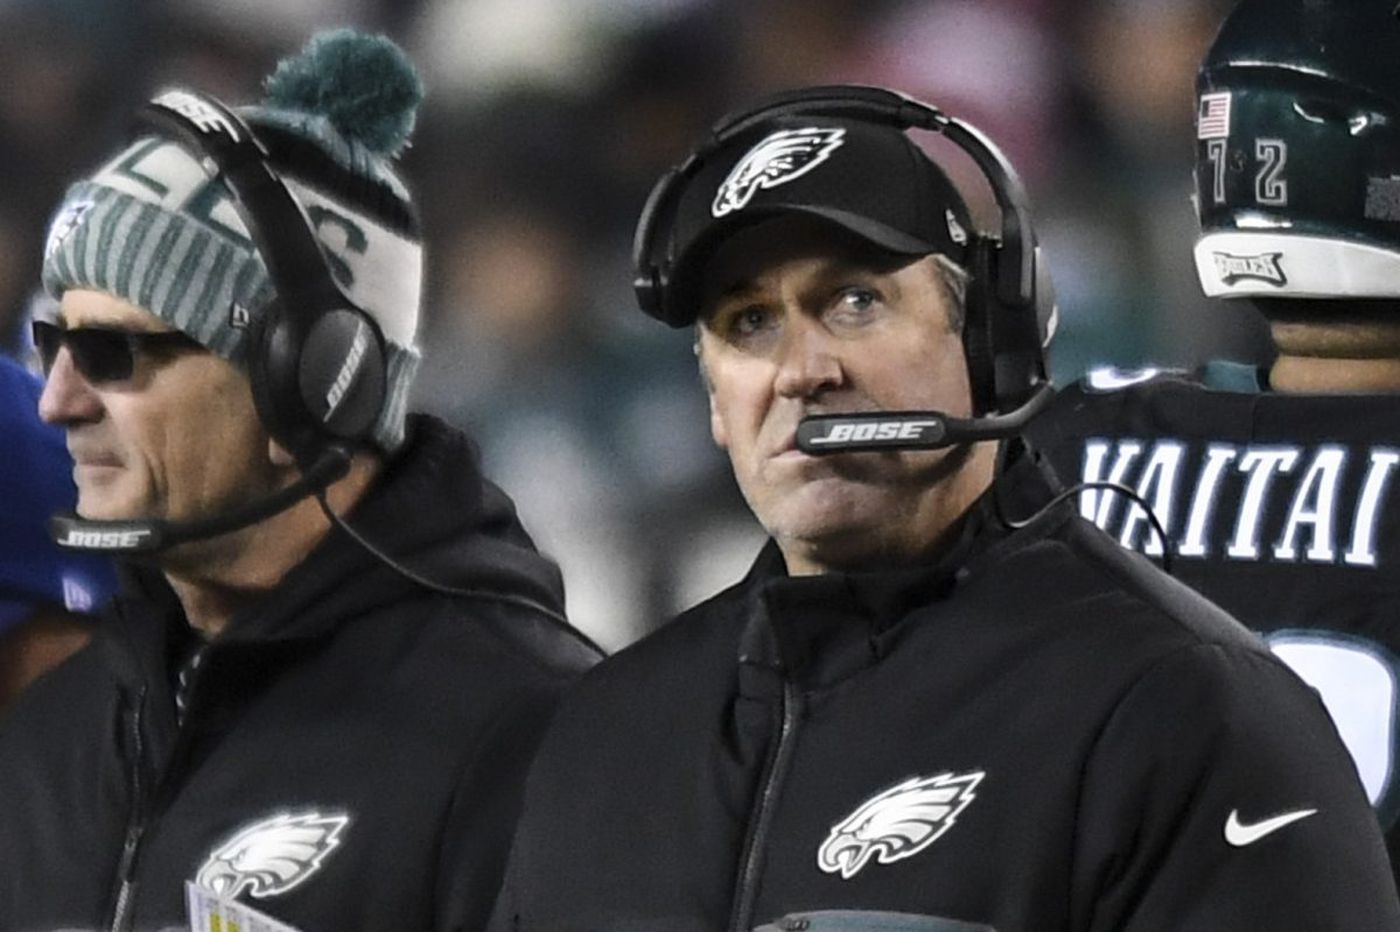 Eagles-Raiders: What we learned